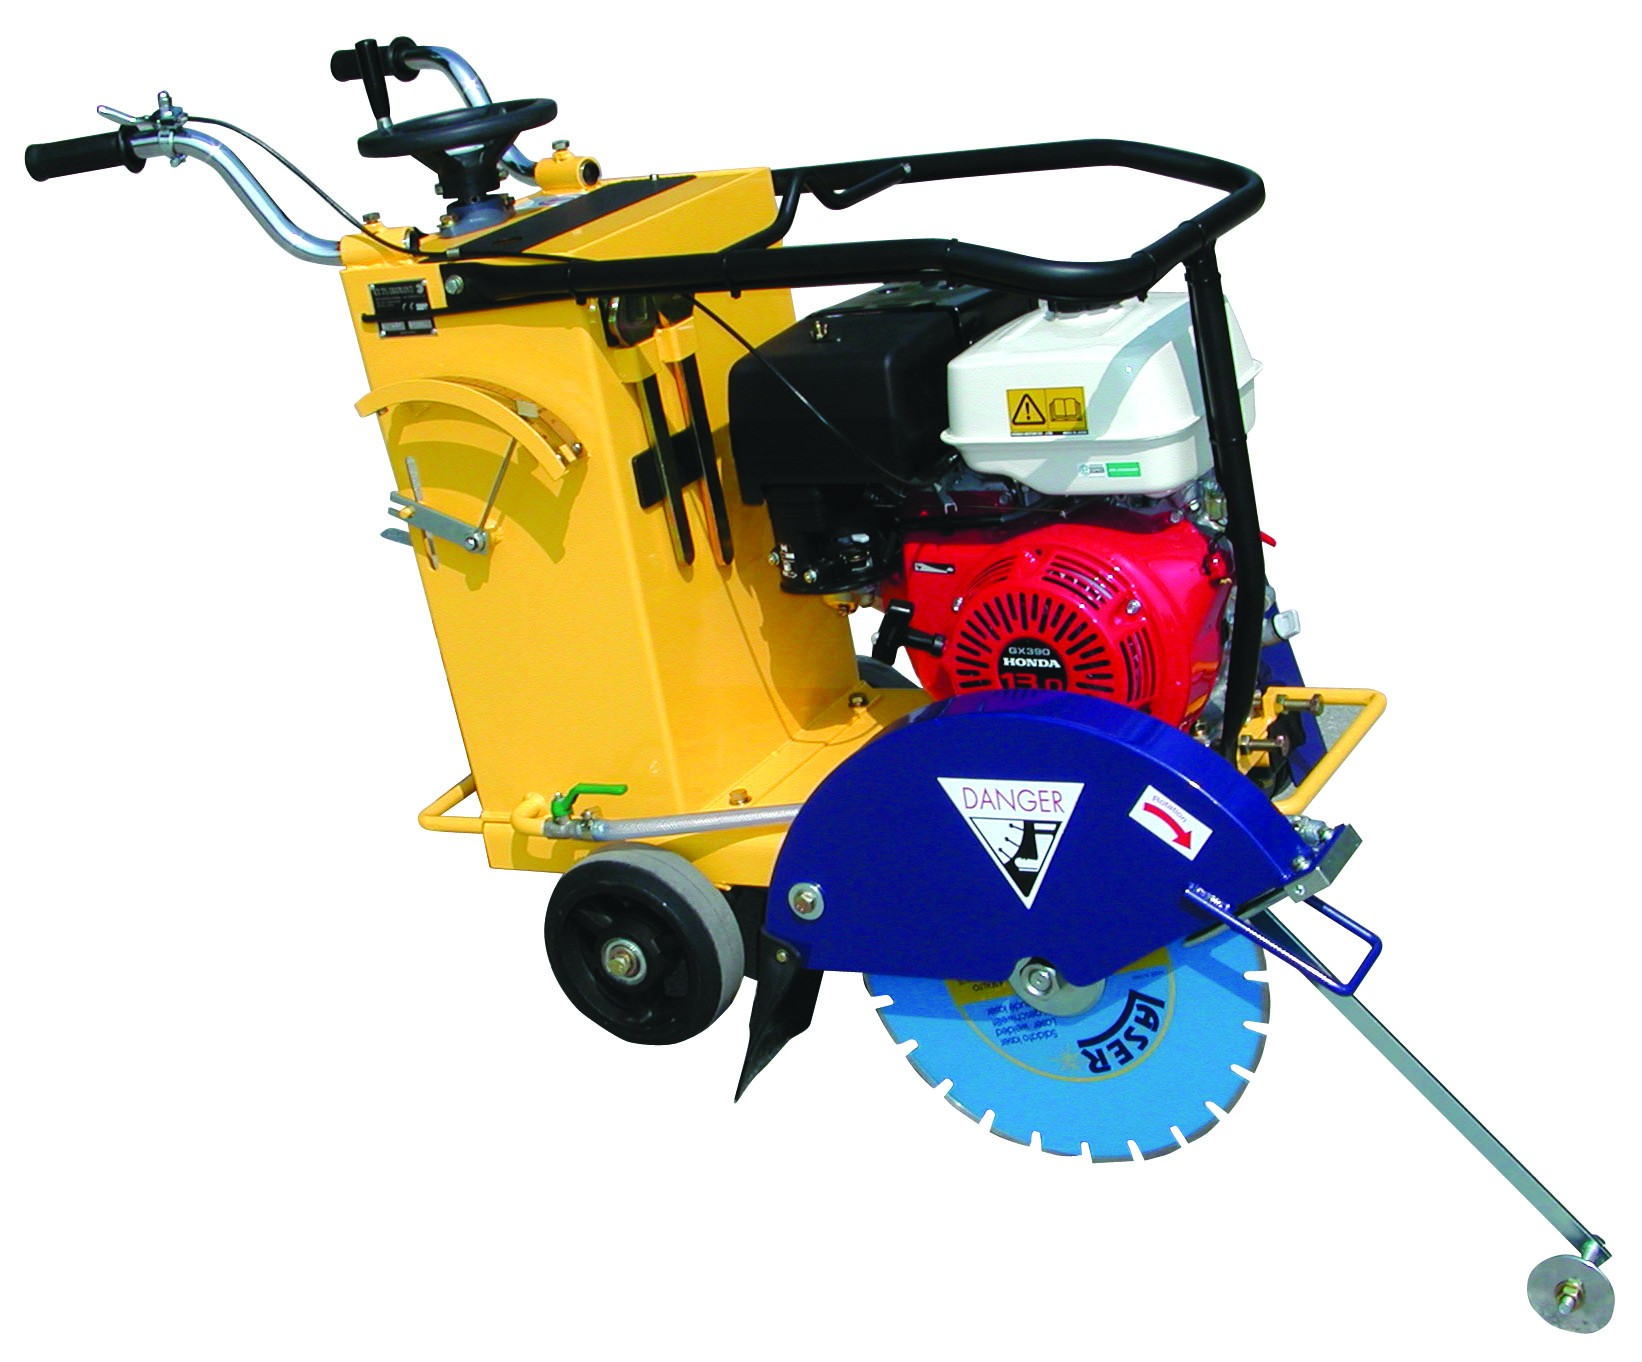 Floor saw for concrete cutting